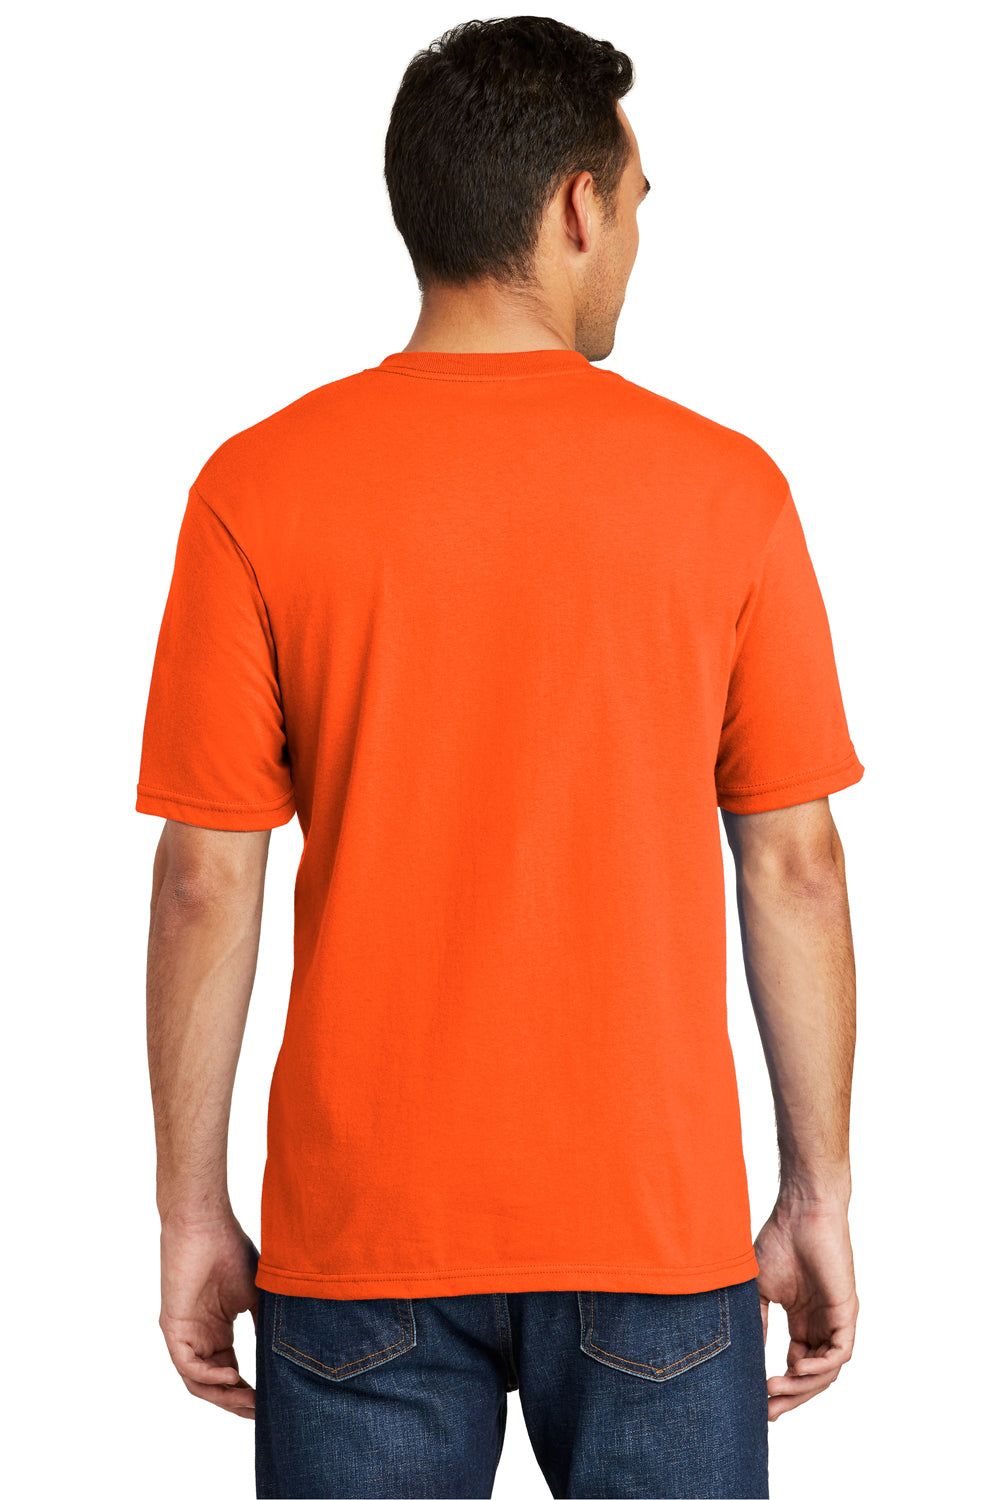 Port & Company USA100P Mens USA Made Short Sleeve Crewneck T-Shirt w/ Pocket Safety Orange Back